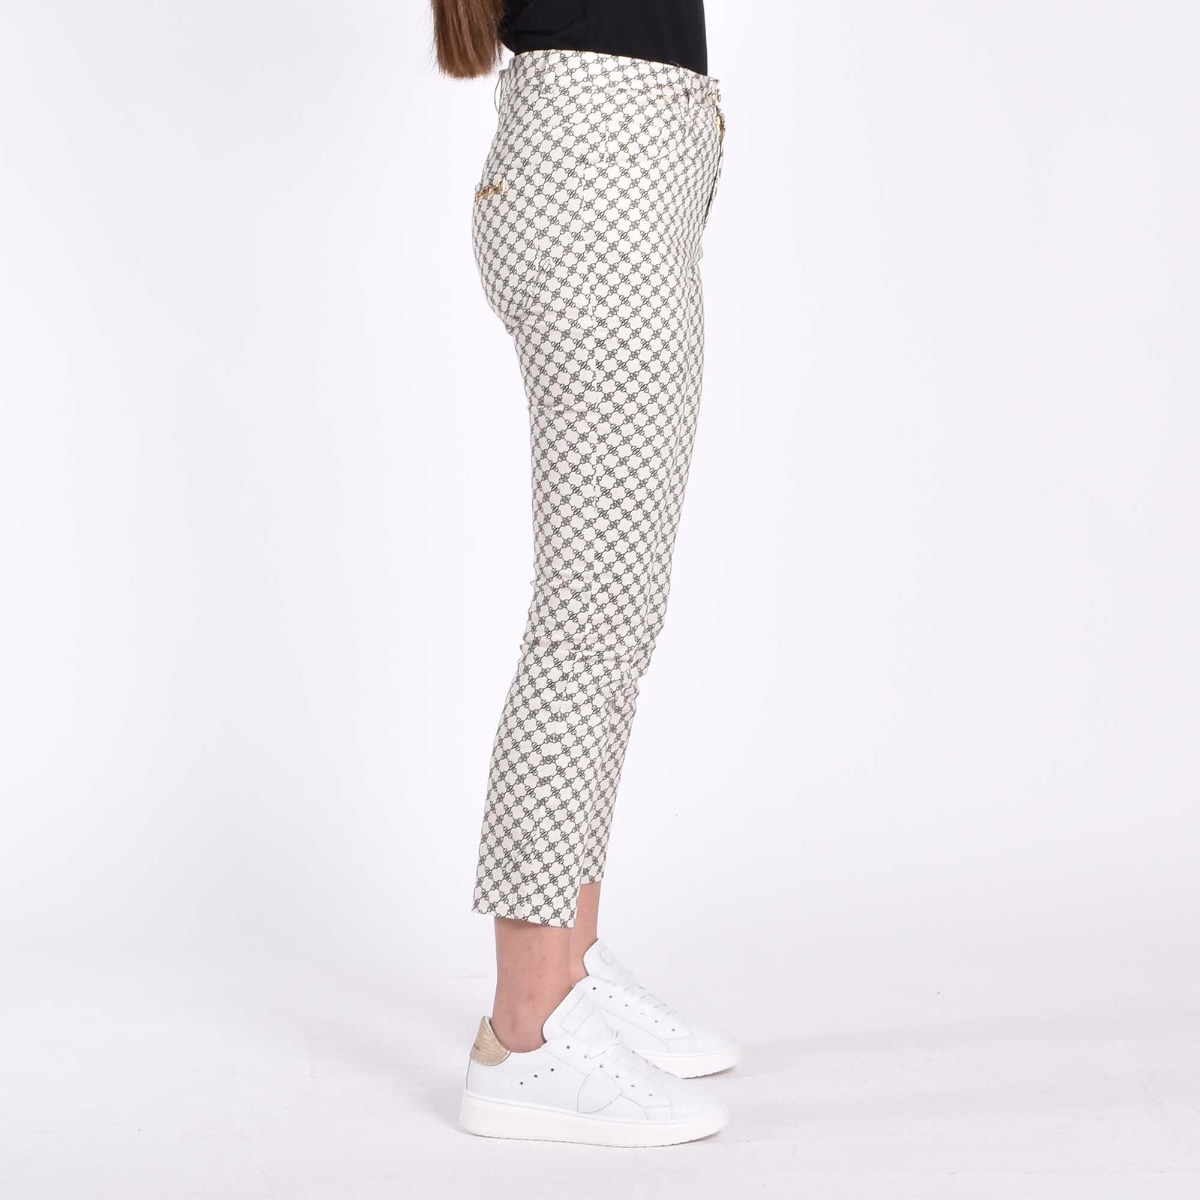 Pantalone con logo all-over - Burro/Nero